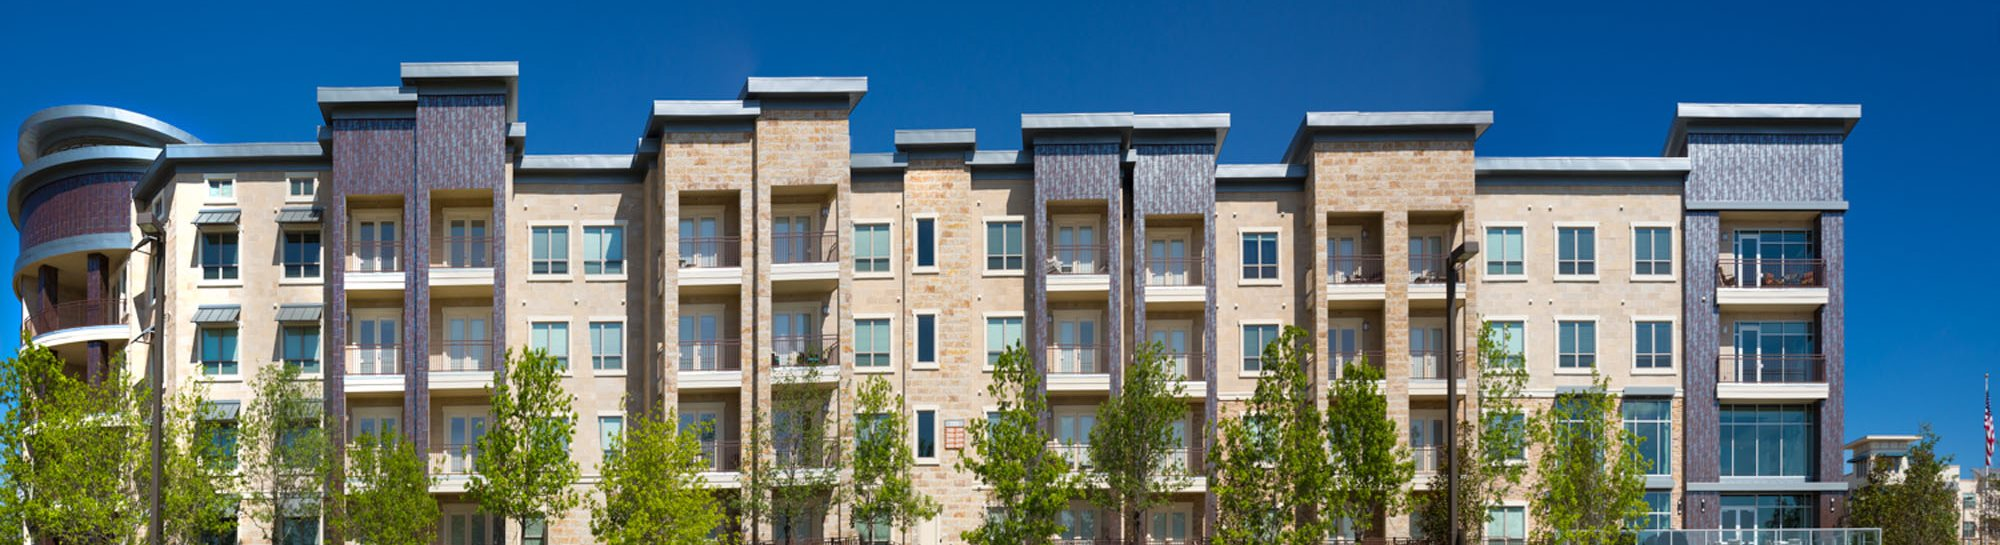 Fountain Pointe Las Colinas offers beautiful one, two or three bedroom apartments